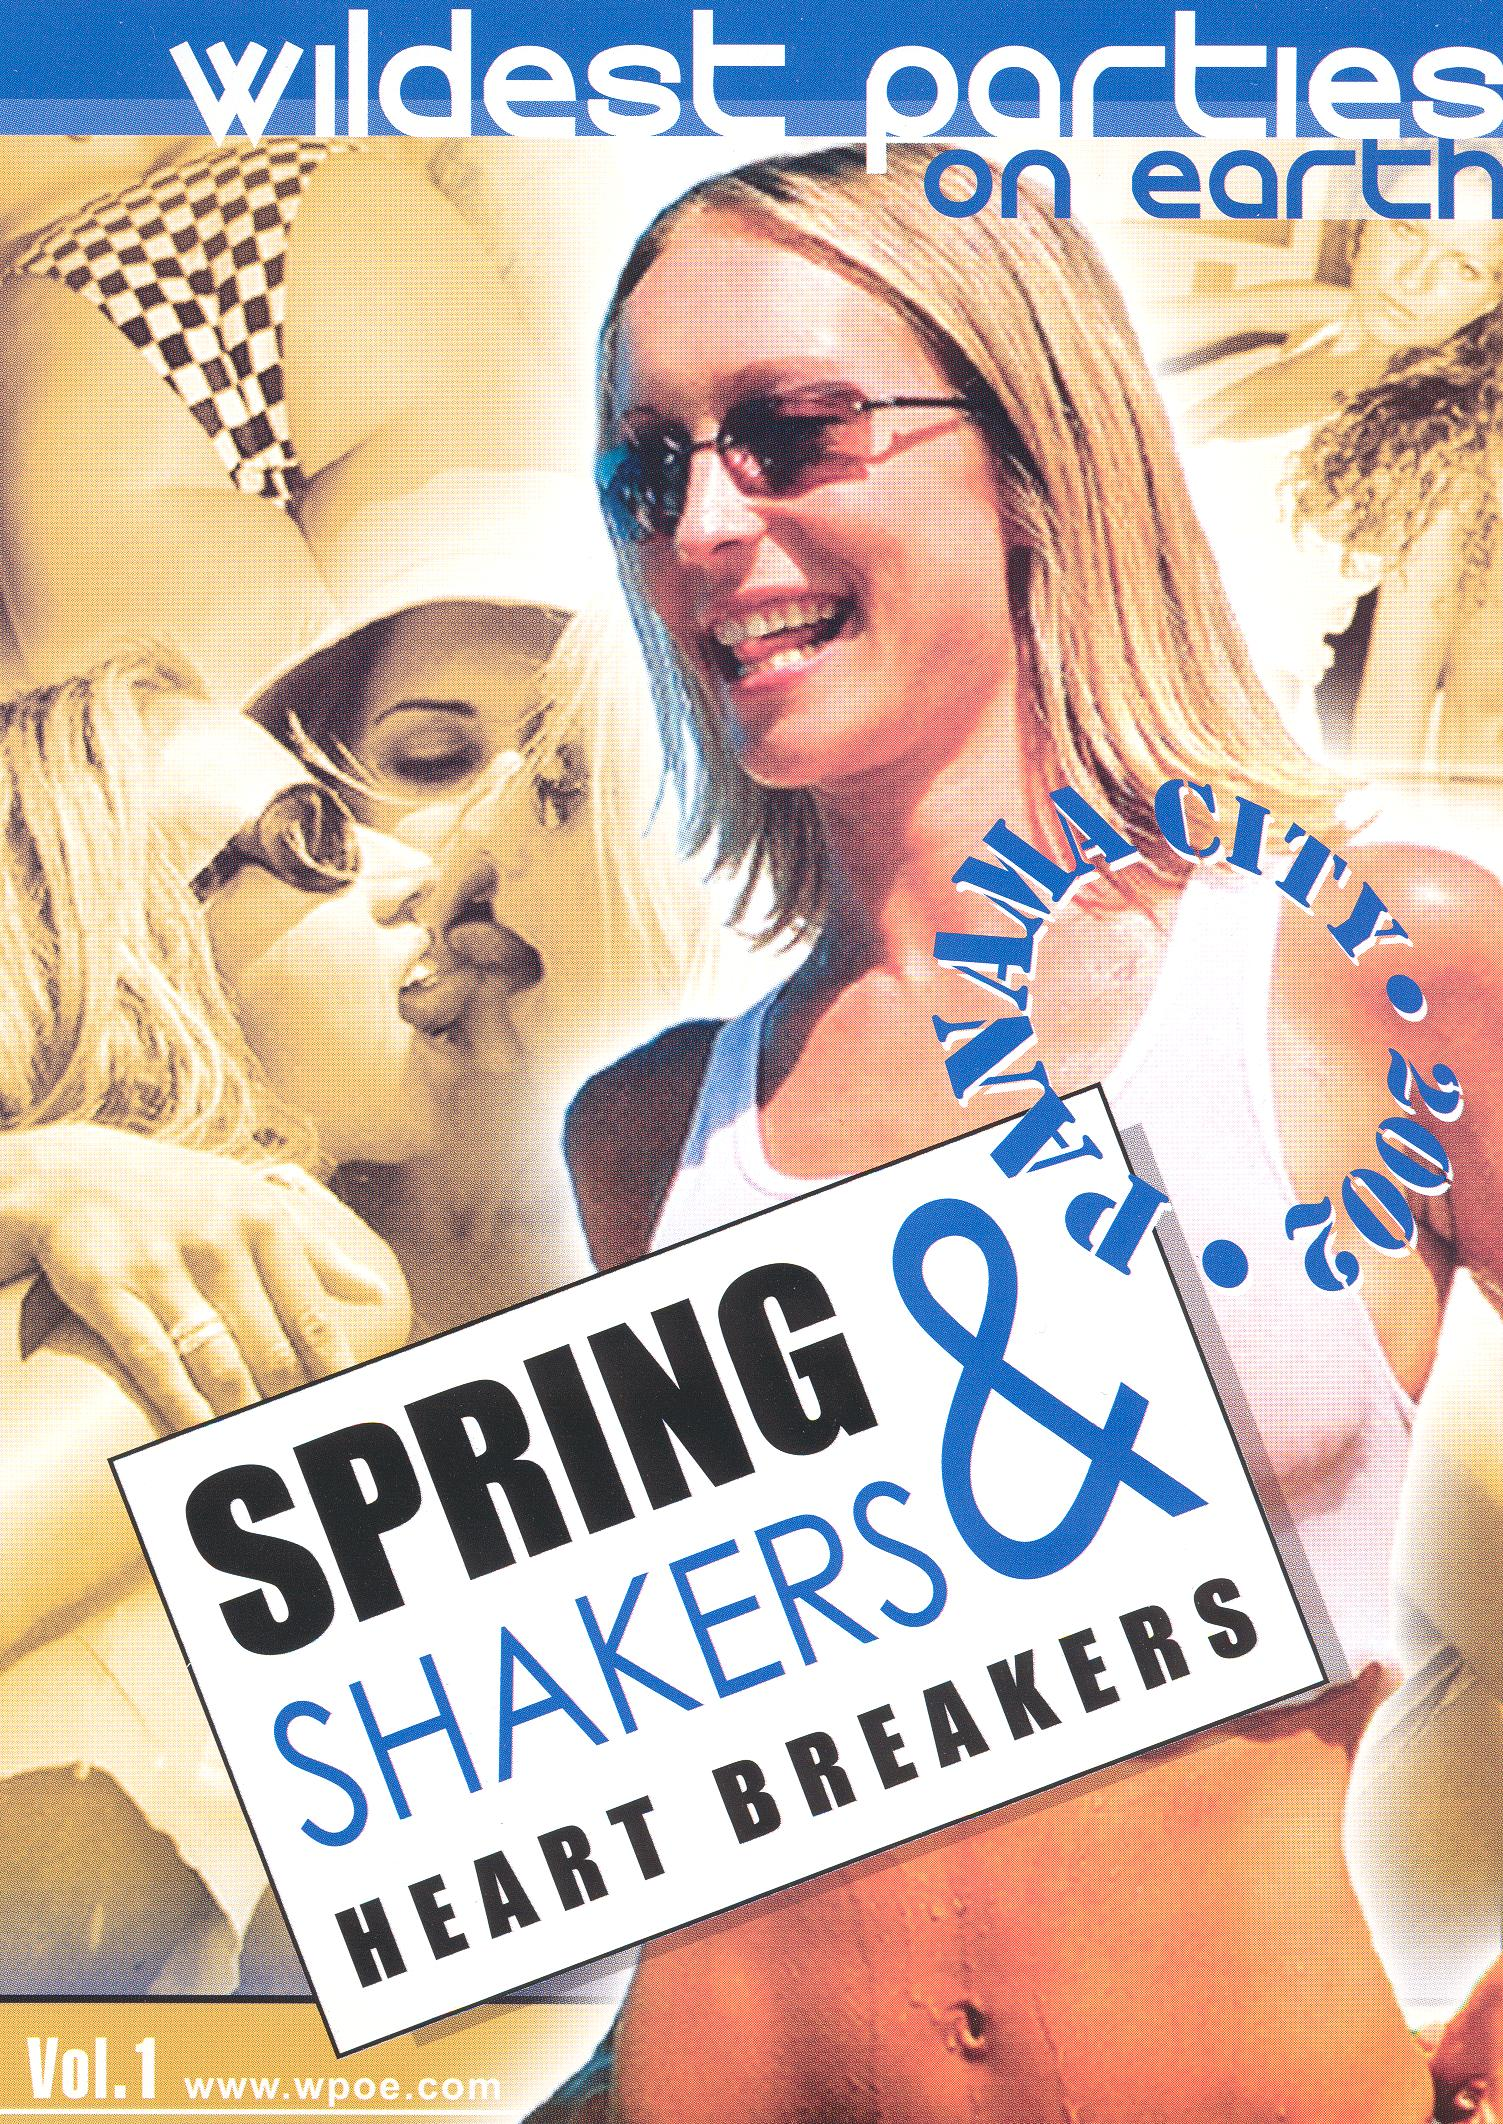 Wildest Parties on Earth Presents: Spring Shakers & Heart Breakers, Vol. 1 - Panama City 2002